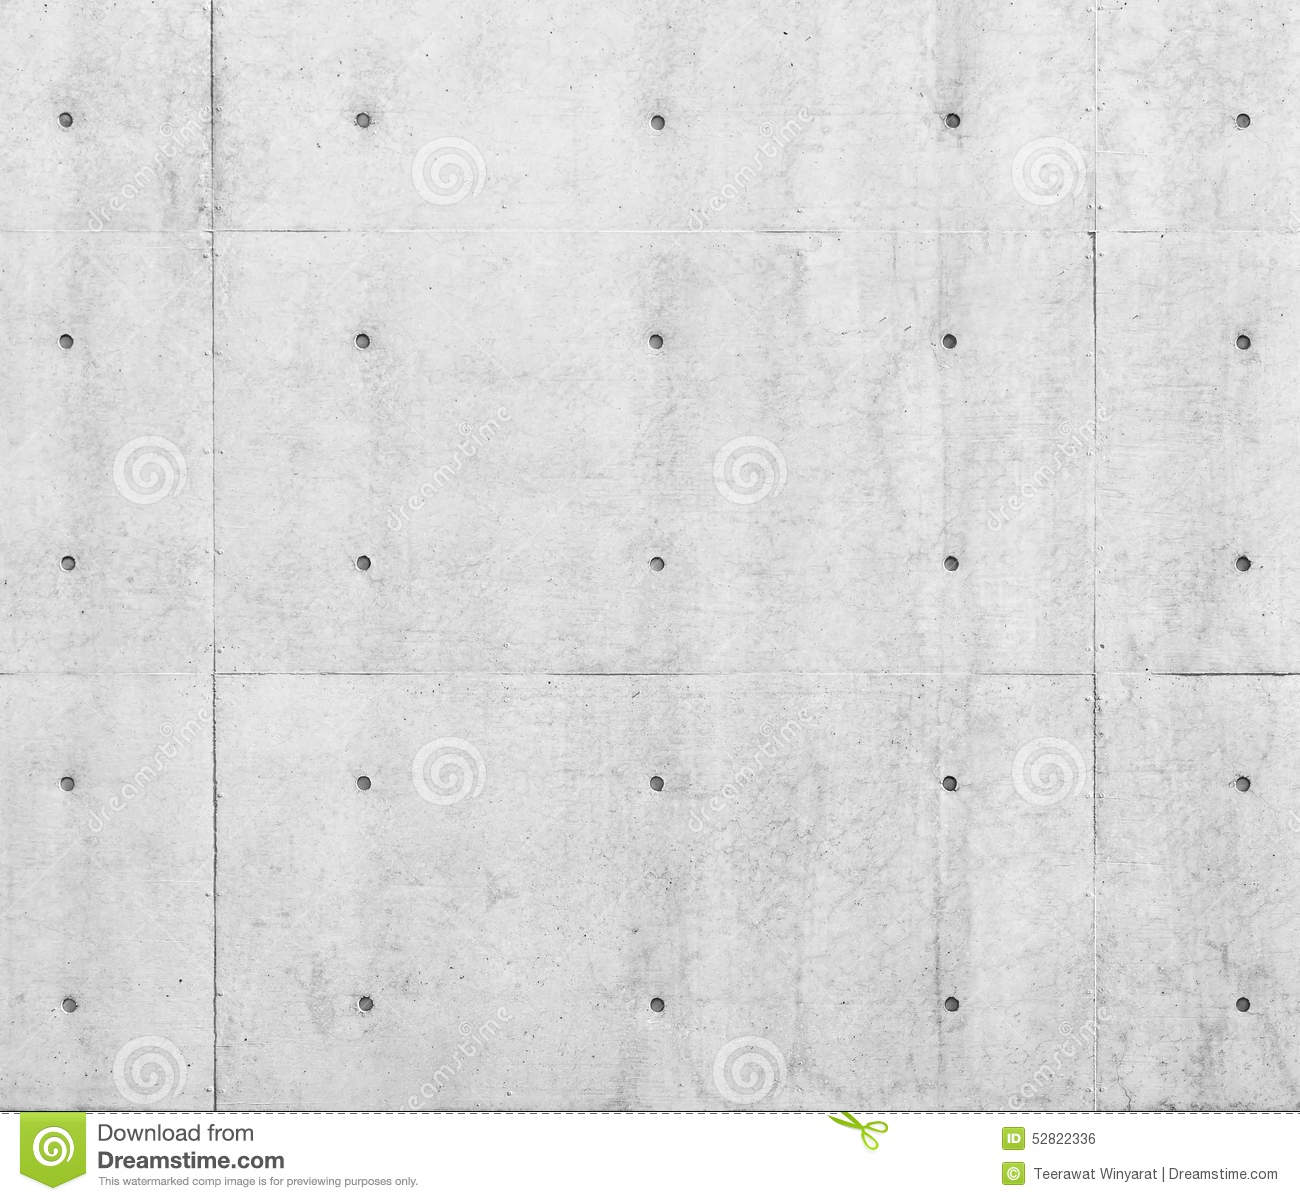 White Concrete Wall : White concrete wall with dot pattern stock photo image